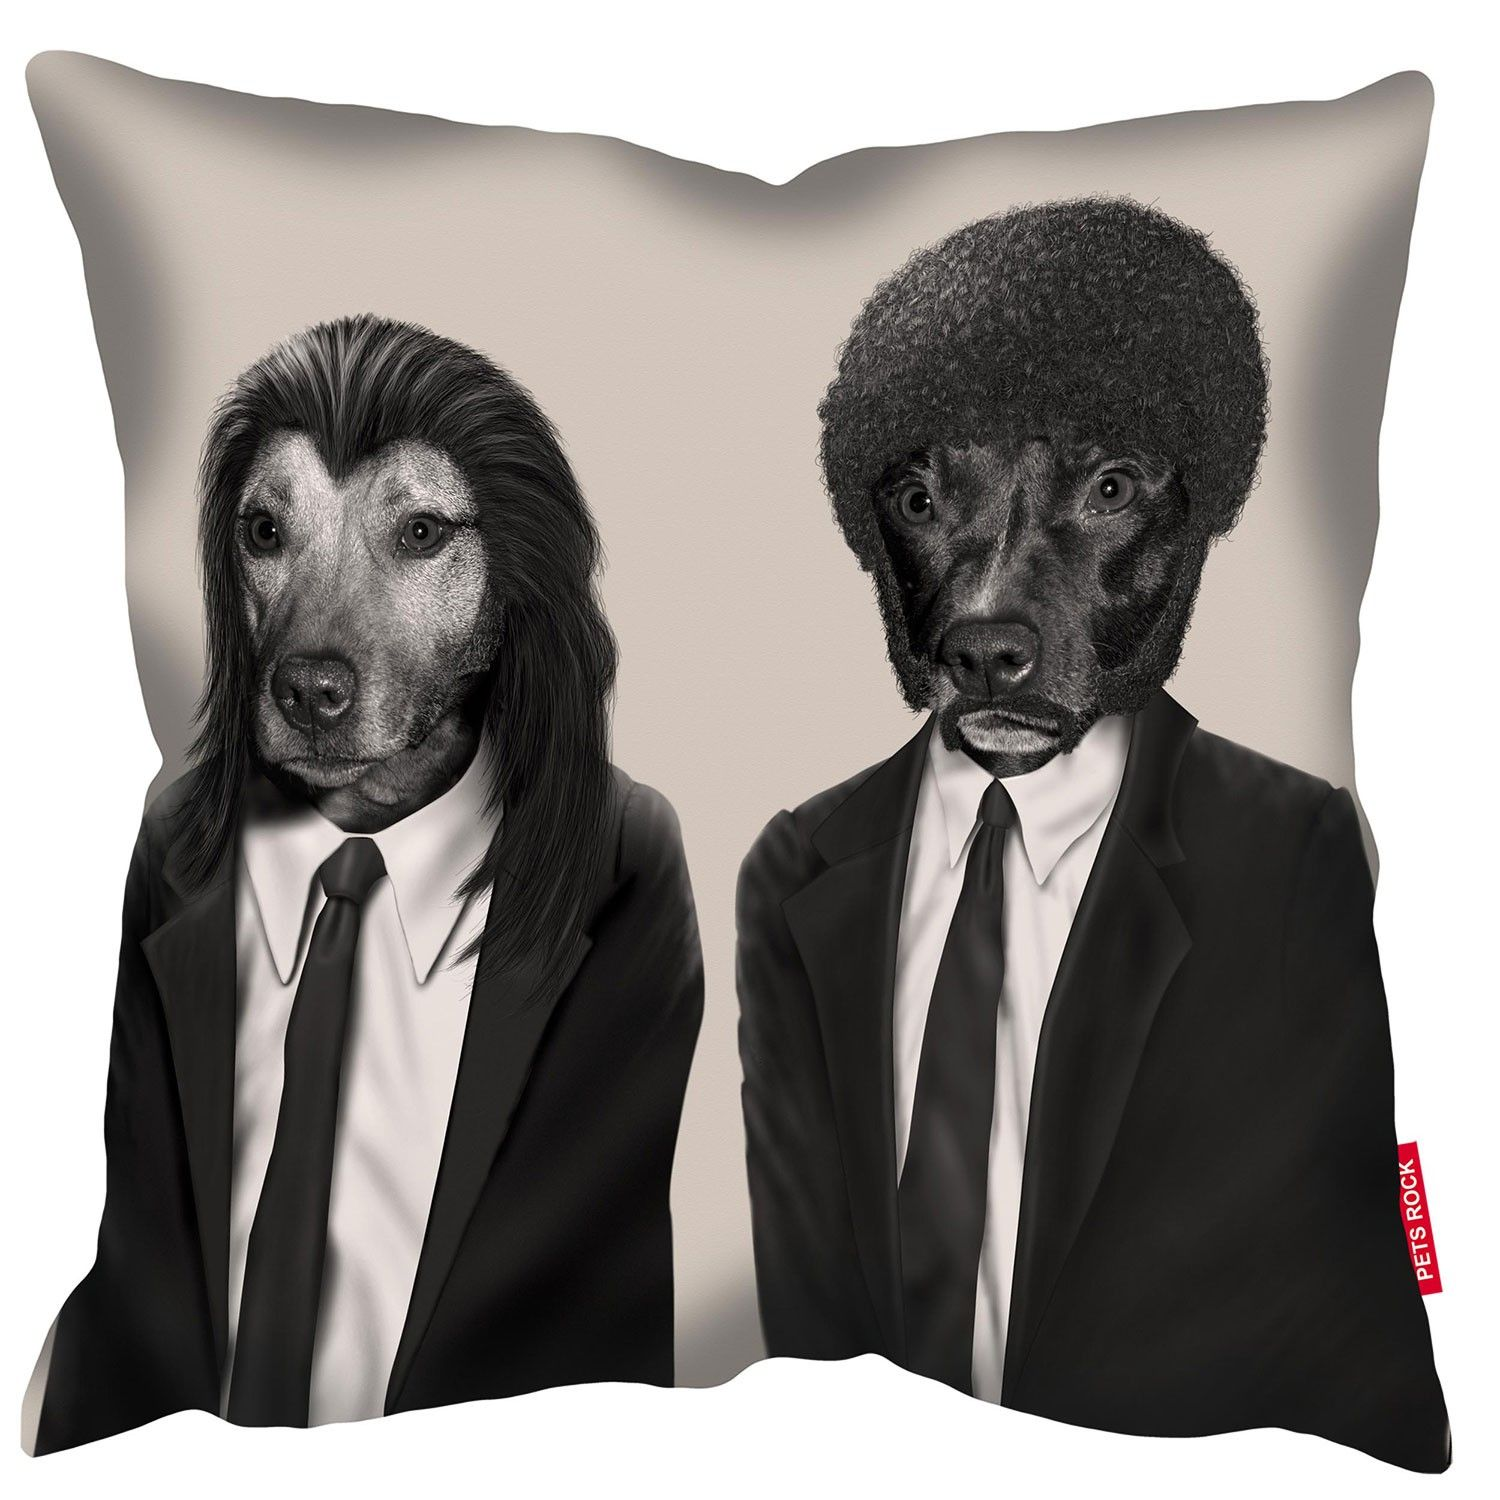 Hit Dogs MonoPets Rock Cushions Fun Funky Pillows